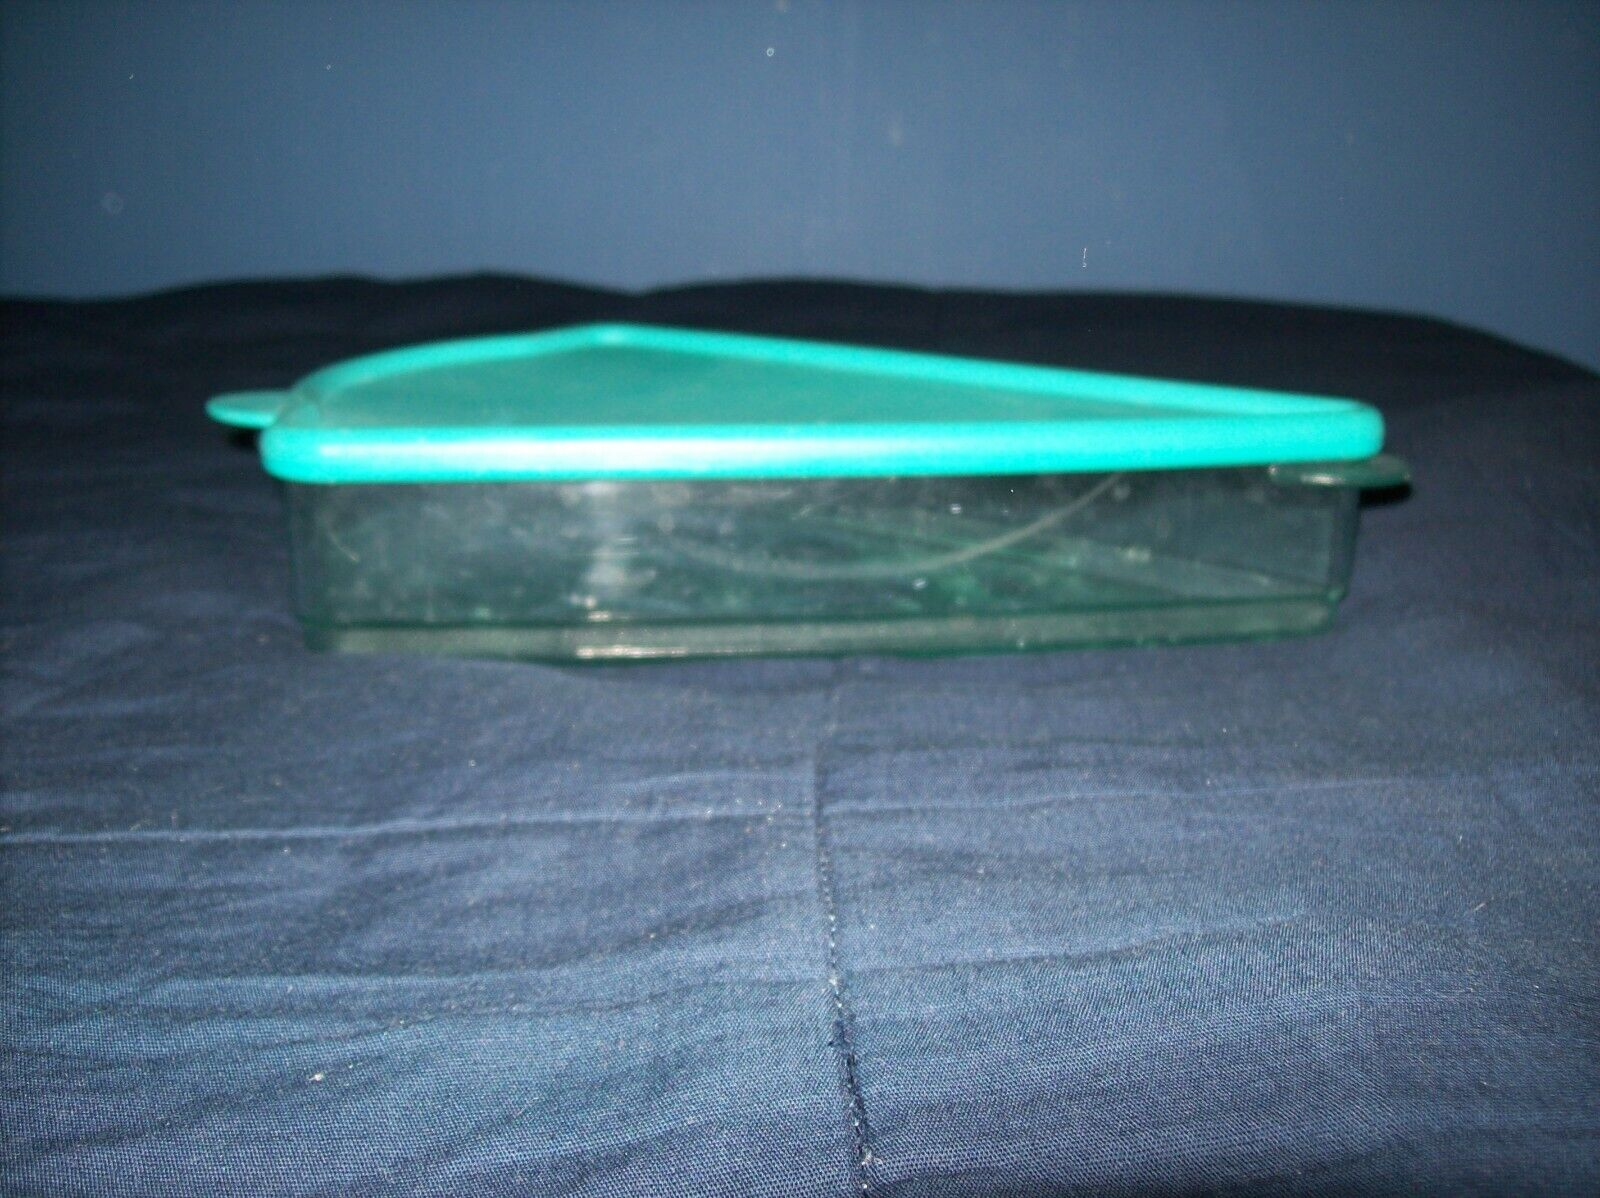 TUPPERWARE KEEP N HEAT PIZZA HOLDER WITH LID MICROWAVE GOOD CONDITION - $13.99